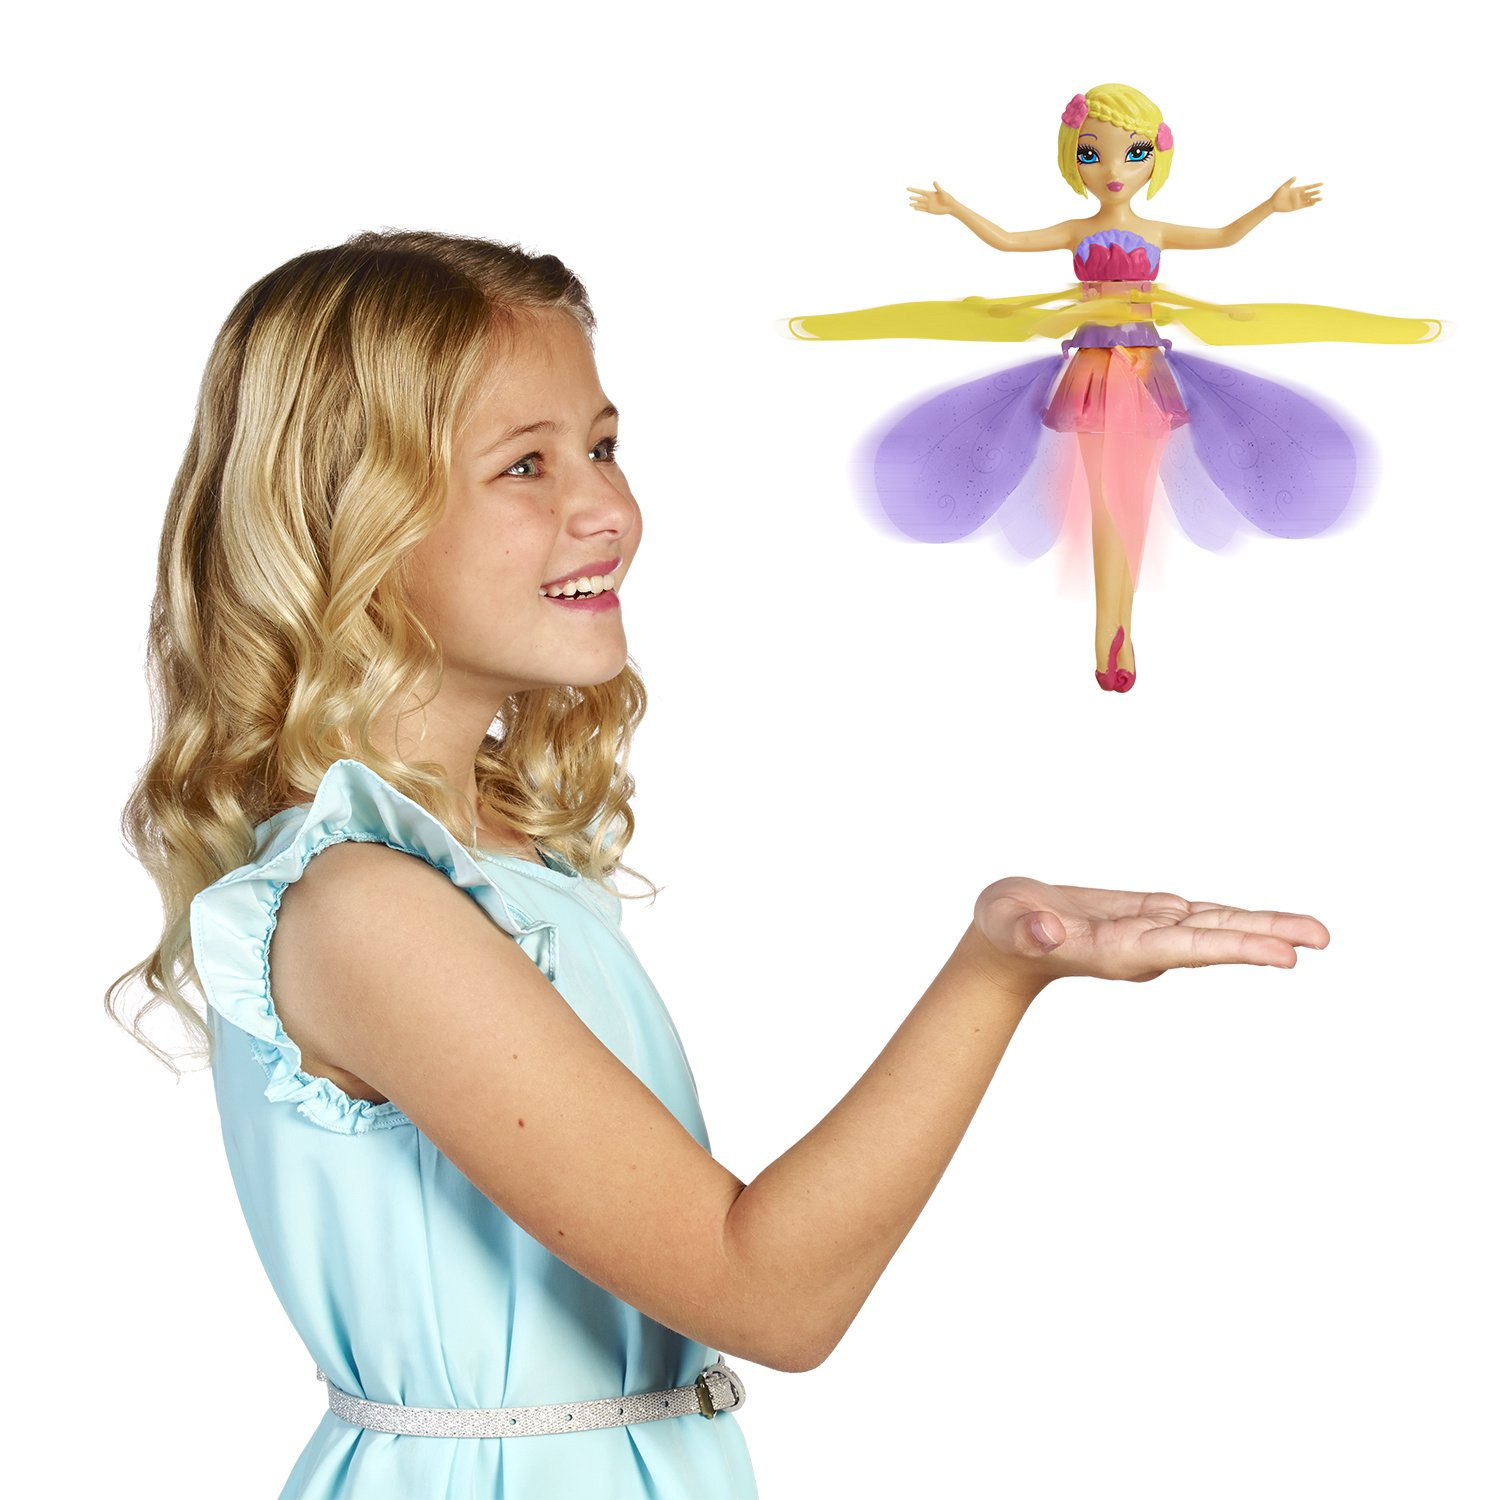 FlutterbyeTM Flying Flower Fairy Amazon Toys & Games